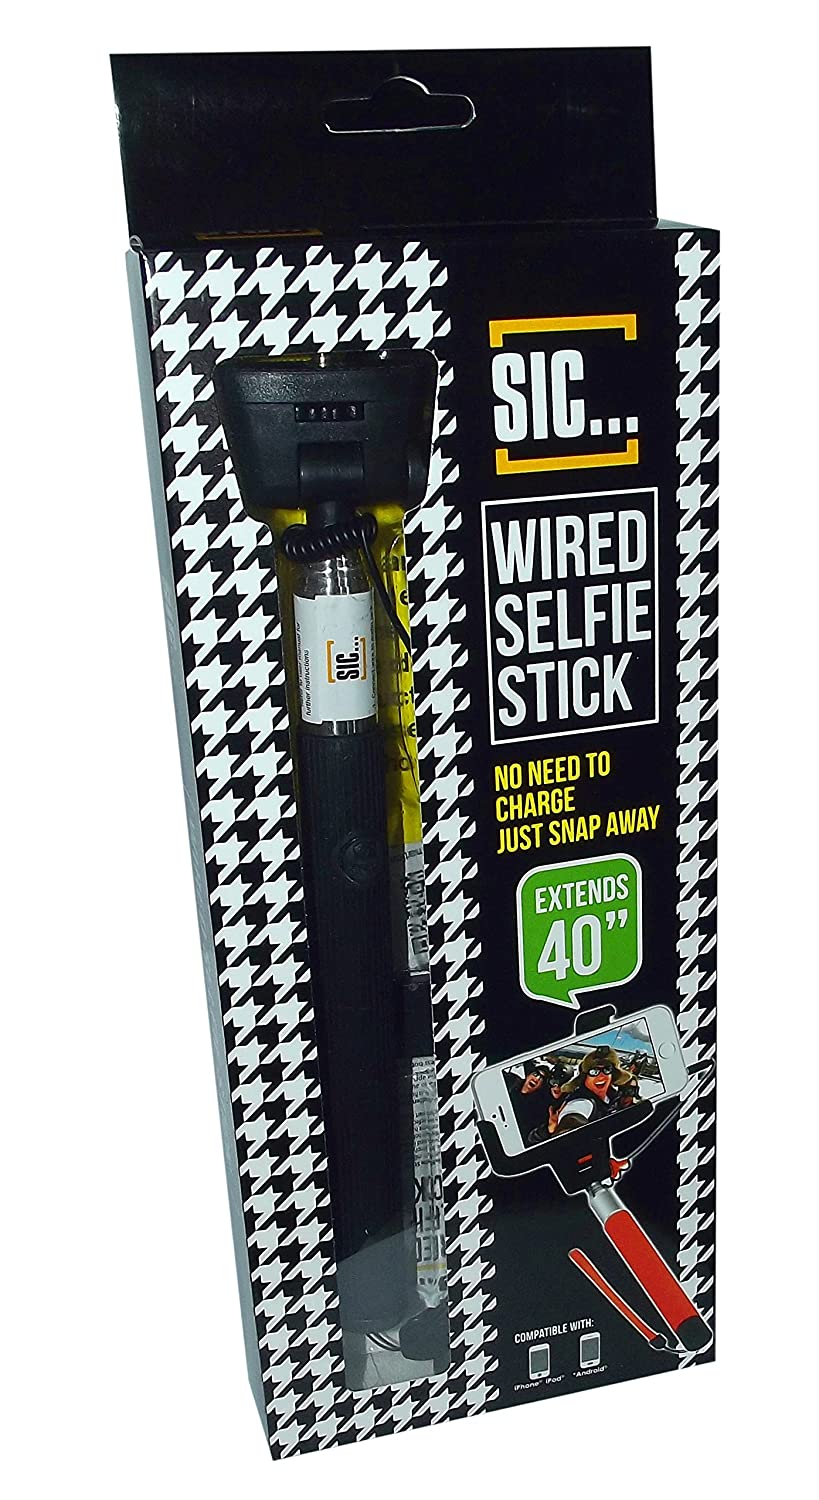 Amazon.com: SIC Wired Selfie Stick - Extends 40\